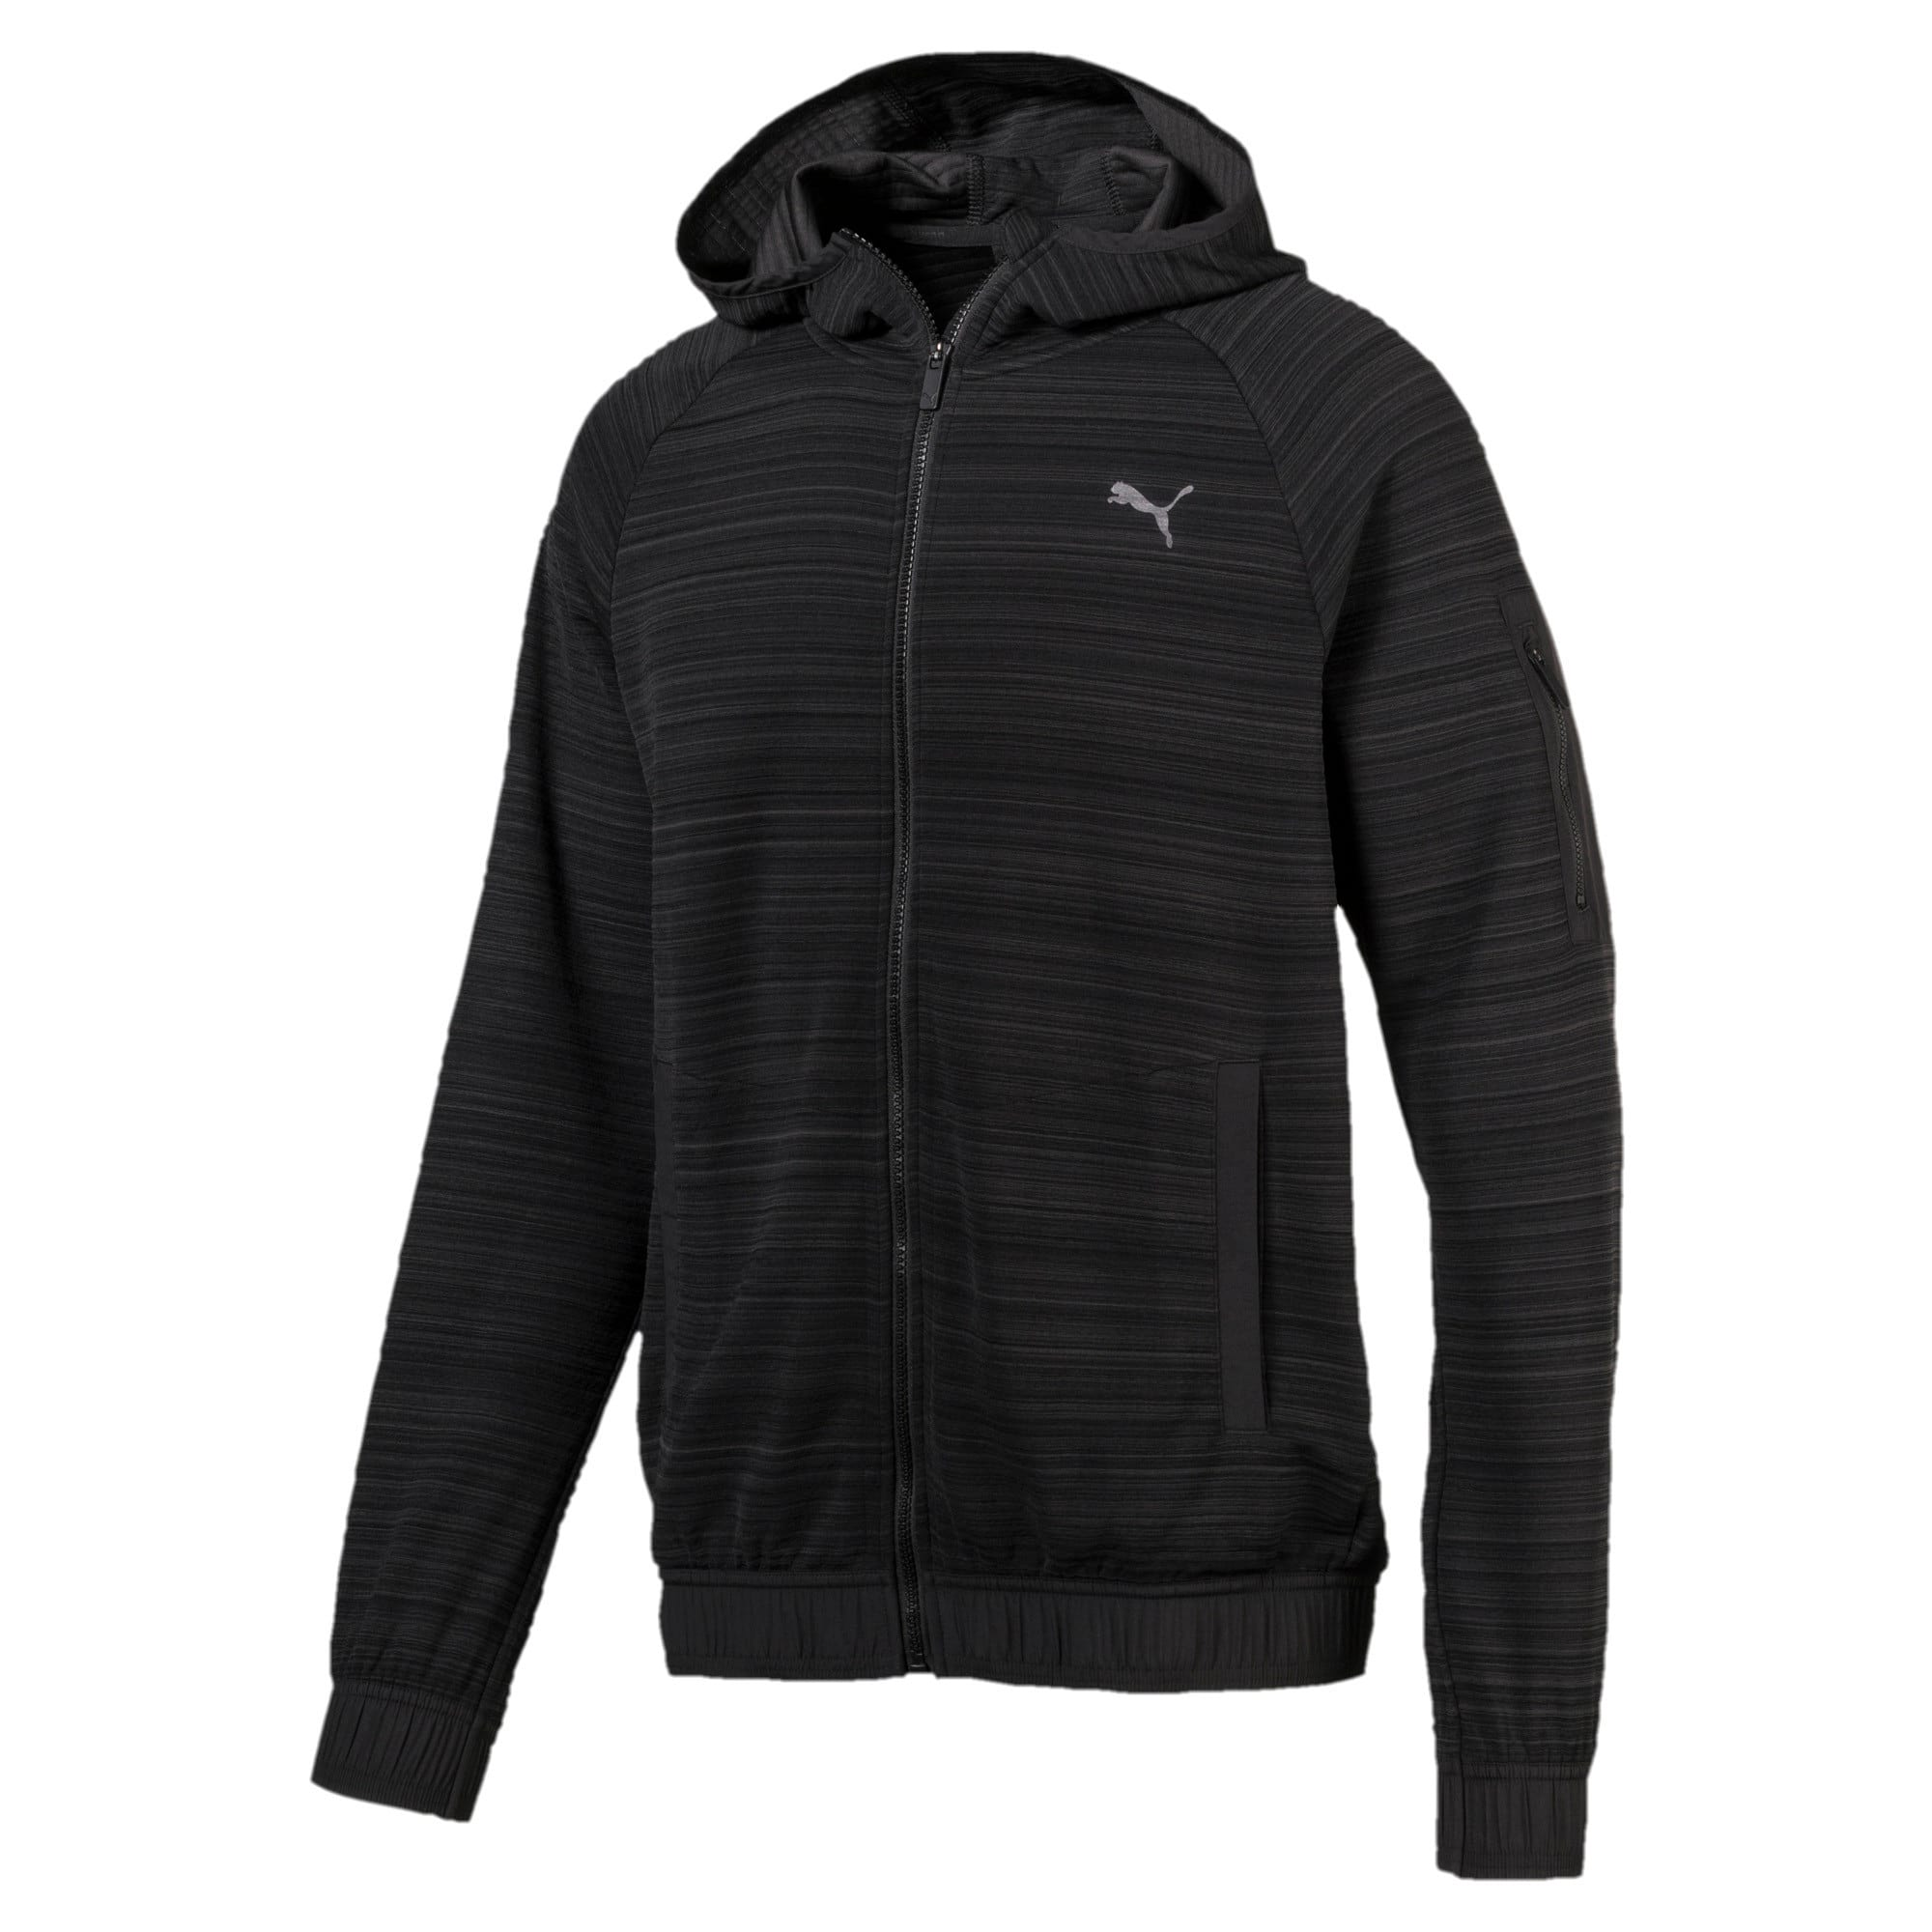 Thumbnail 5 of Energy Men's Full Zip Hoodie, Puma Black Heather, medium-IND